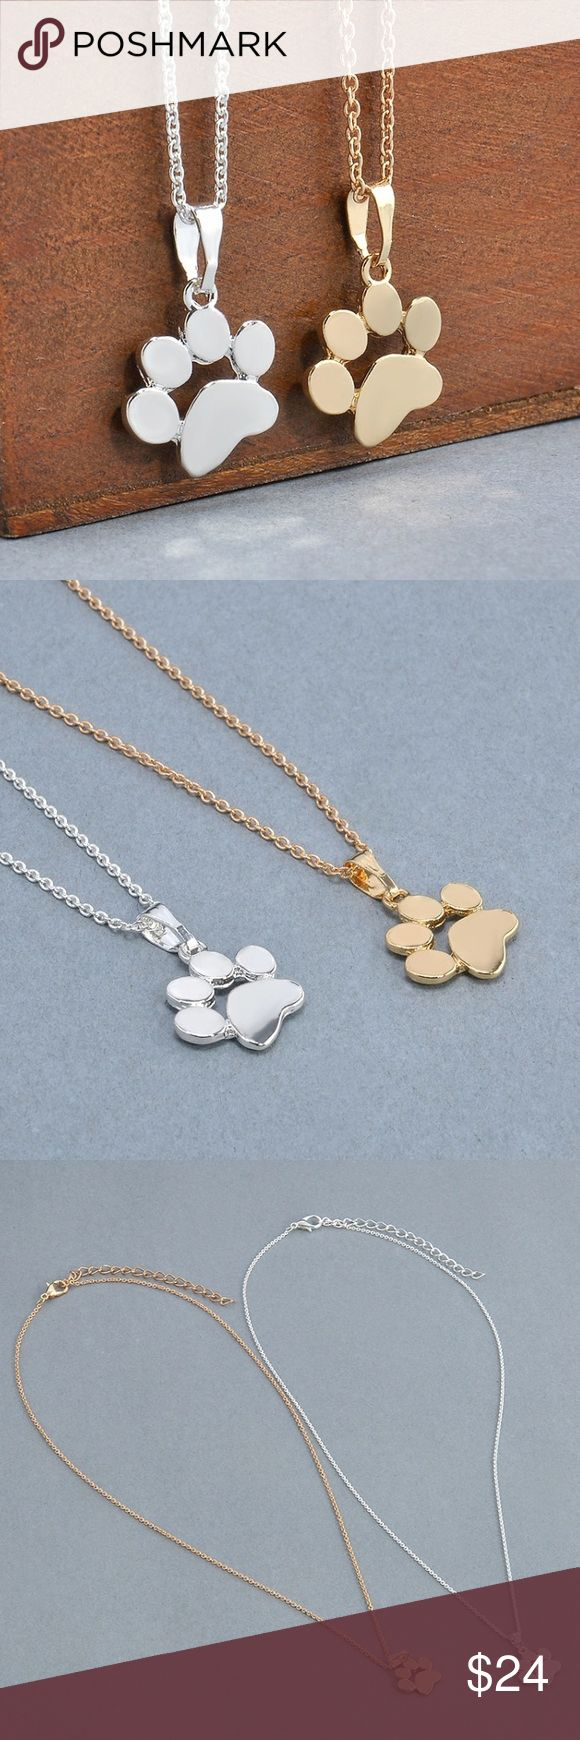 Paw Print Necklace, Perfect for Animal Lovers!  Paw Print Necklace, Perfect for Animal Lovers!  Bundle with other items for additional discounts! Jewelry Necklaces